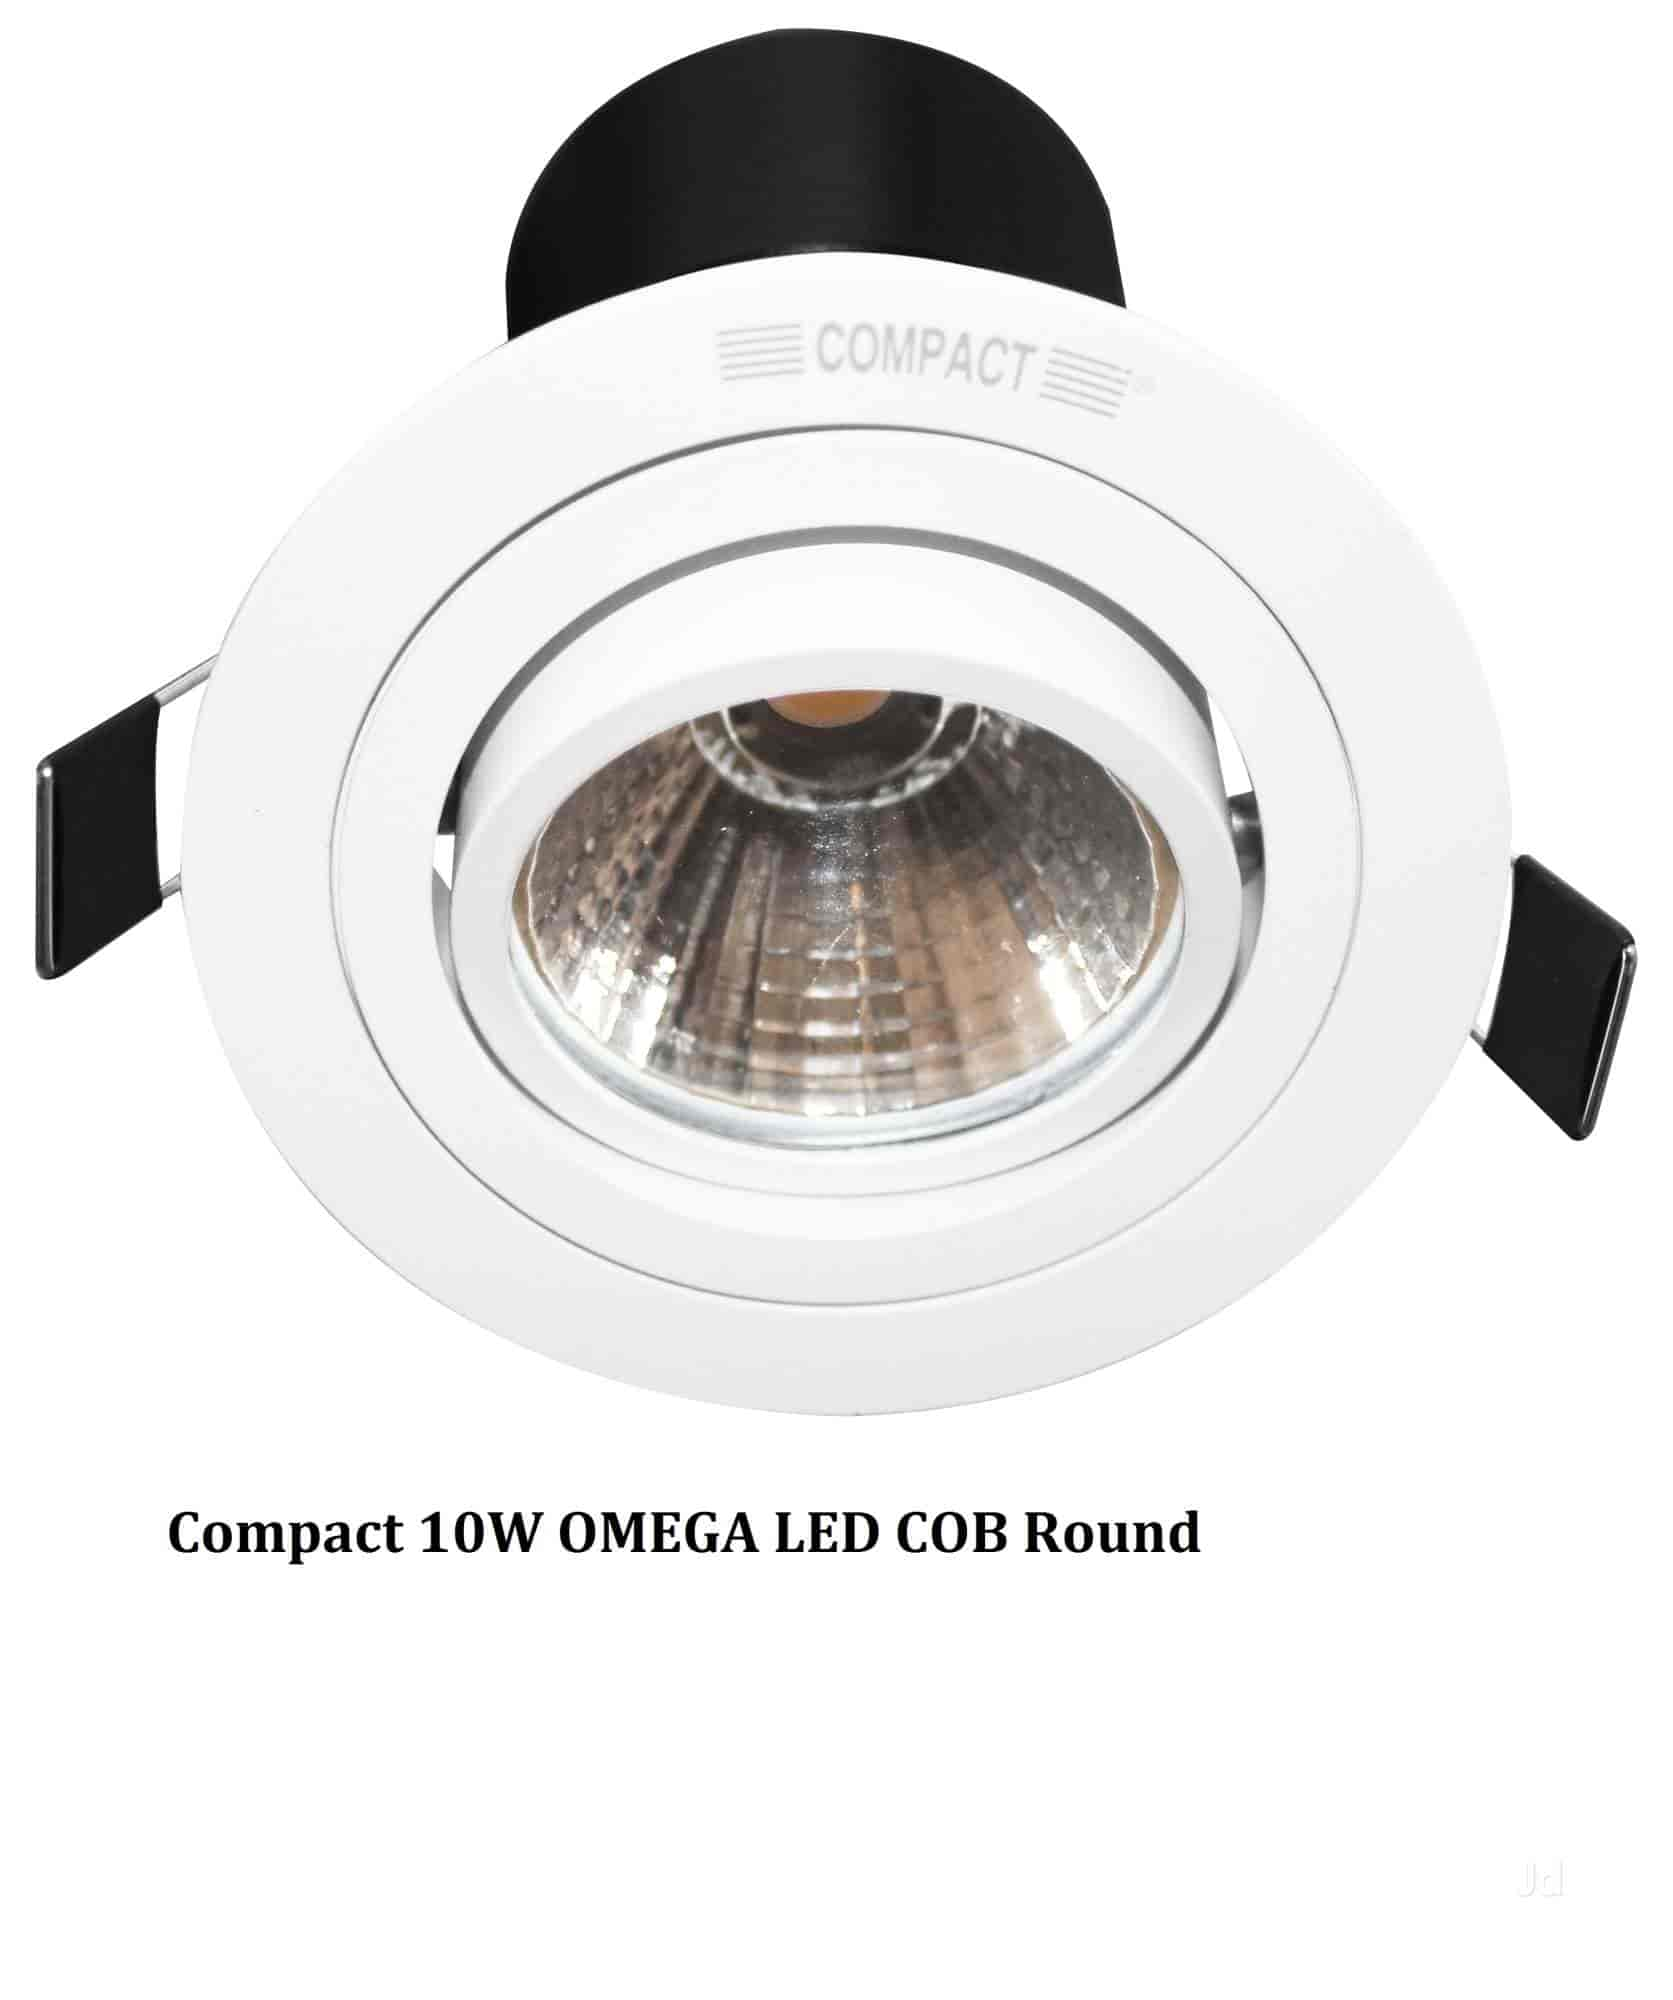 sc 1 st  Justdial & Compact LED Sector 11 - LED Light Dealers in Delhi - Justdial